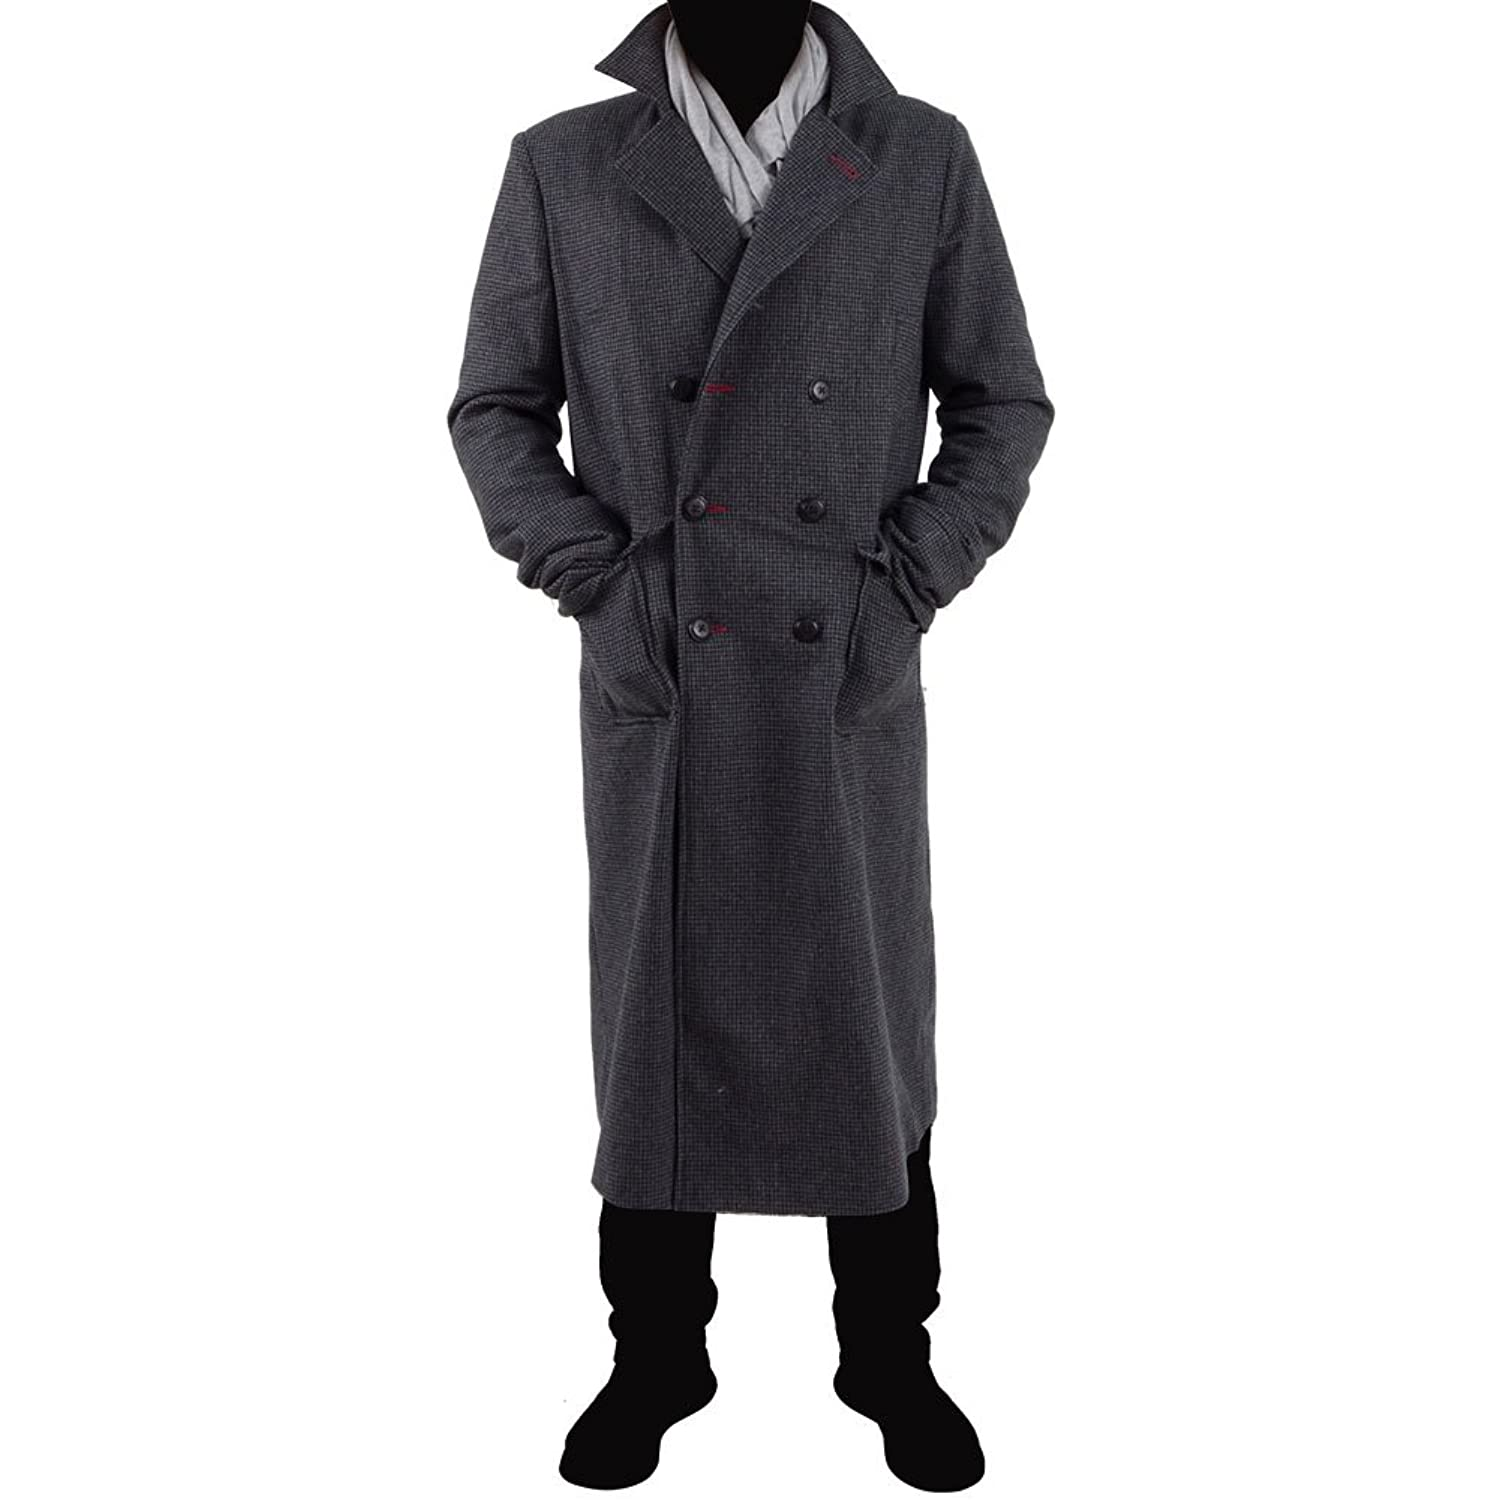 50s Men's Jackets| Greaser Jackets, Leather, Bomber, Gaberdine Mens Plaids And Tweeds Long Trench Coat Halloween Cosplay Costume Overcoat $100.00 AT vintagedancer.com